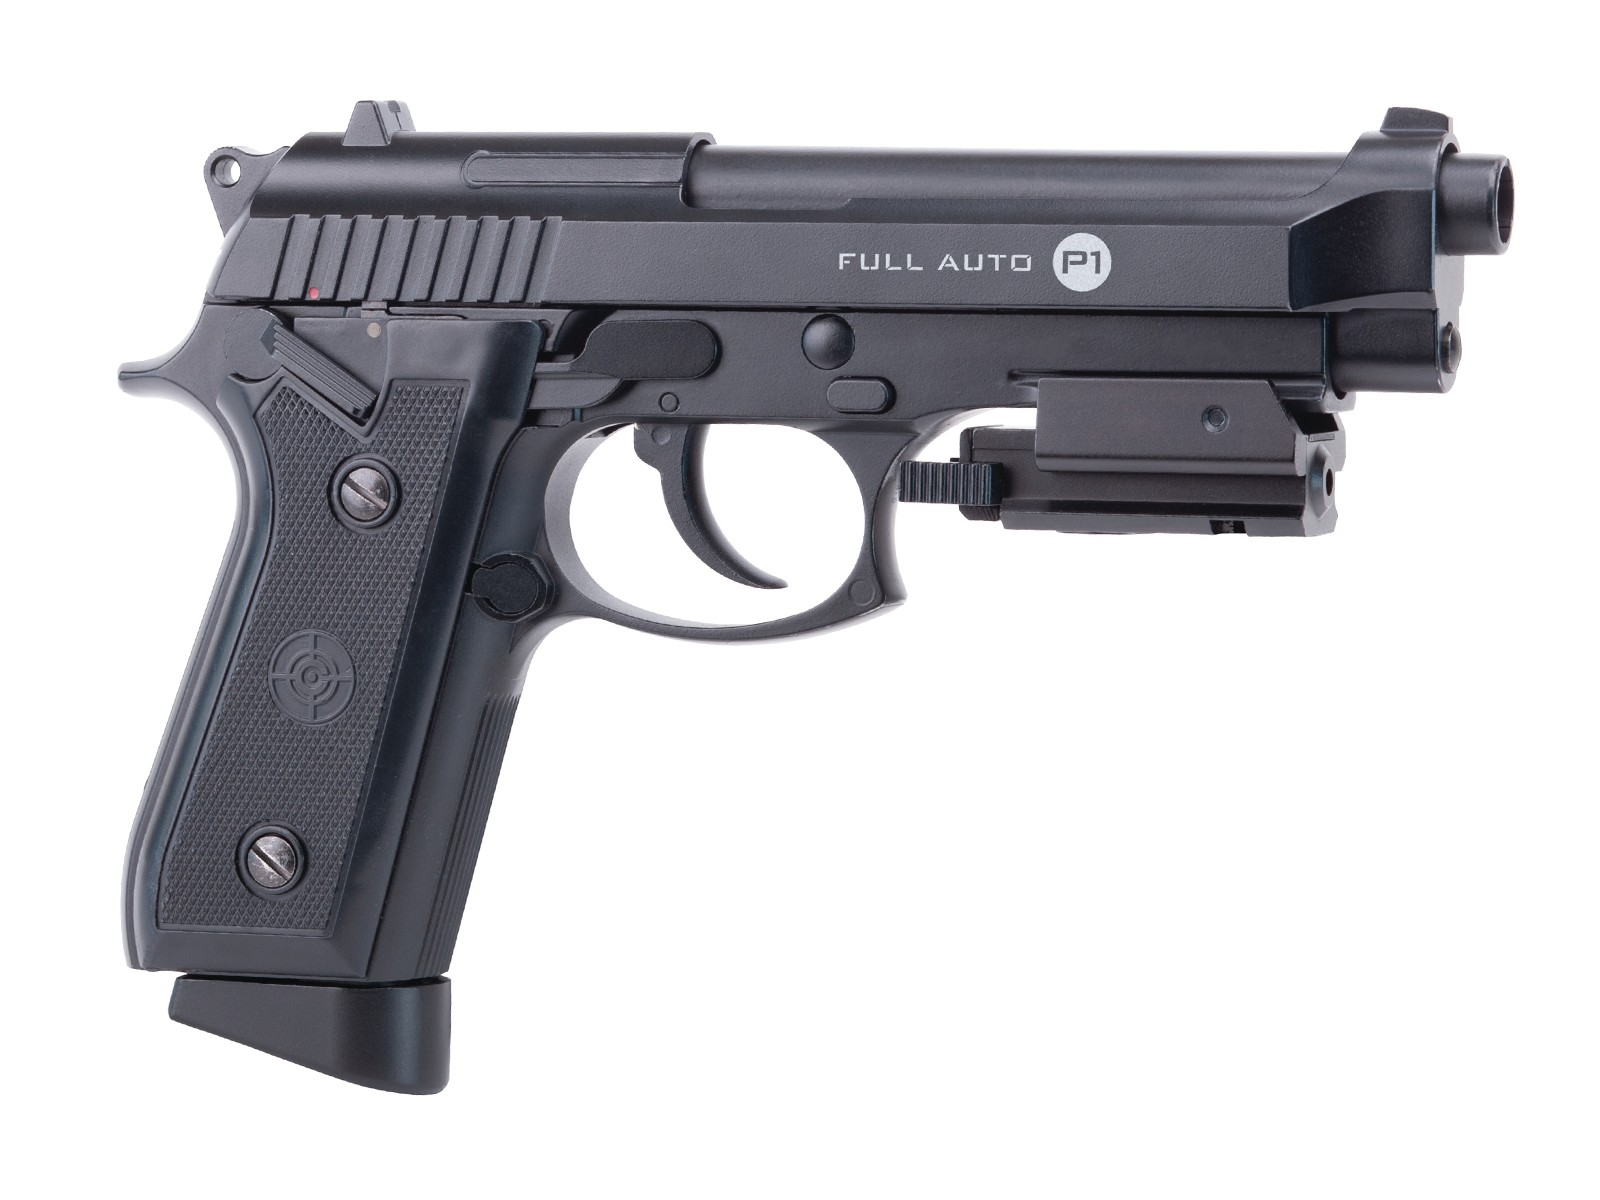 Crosman P1 Full